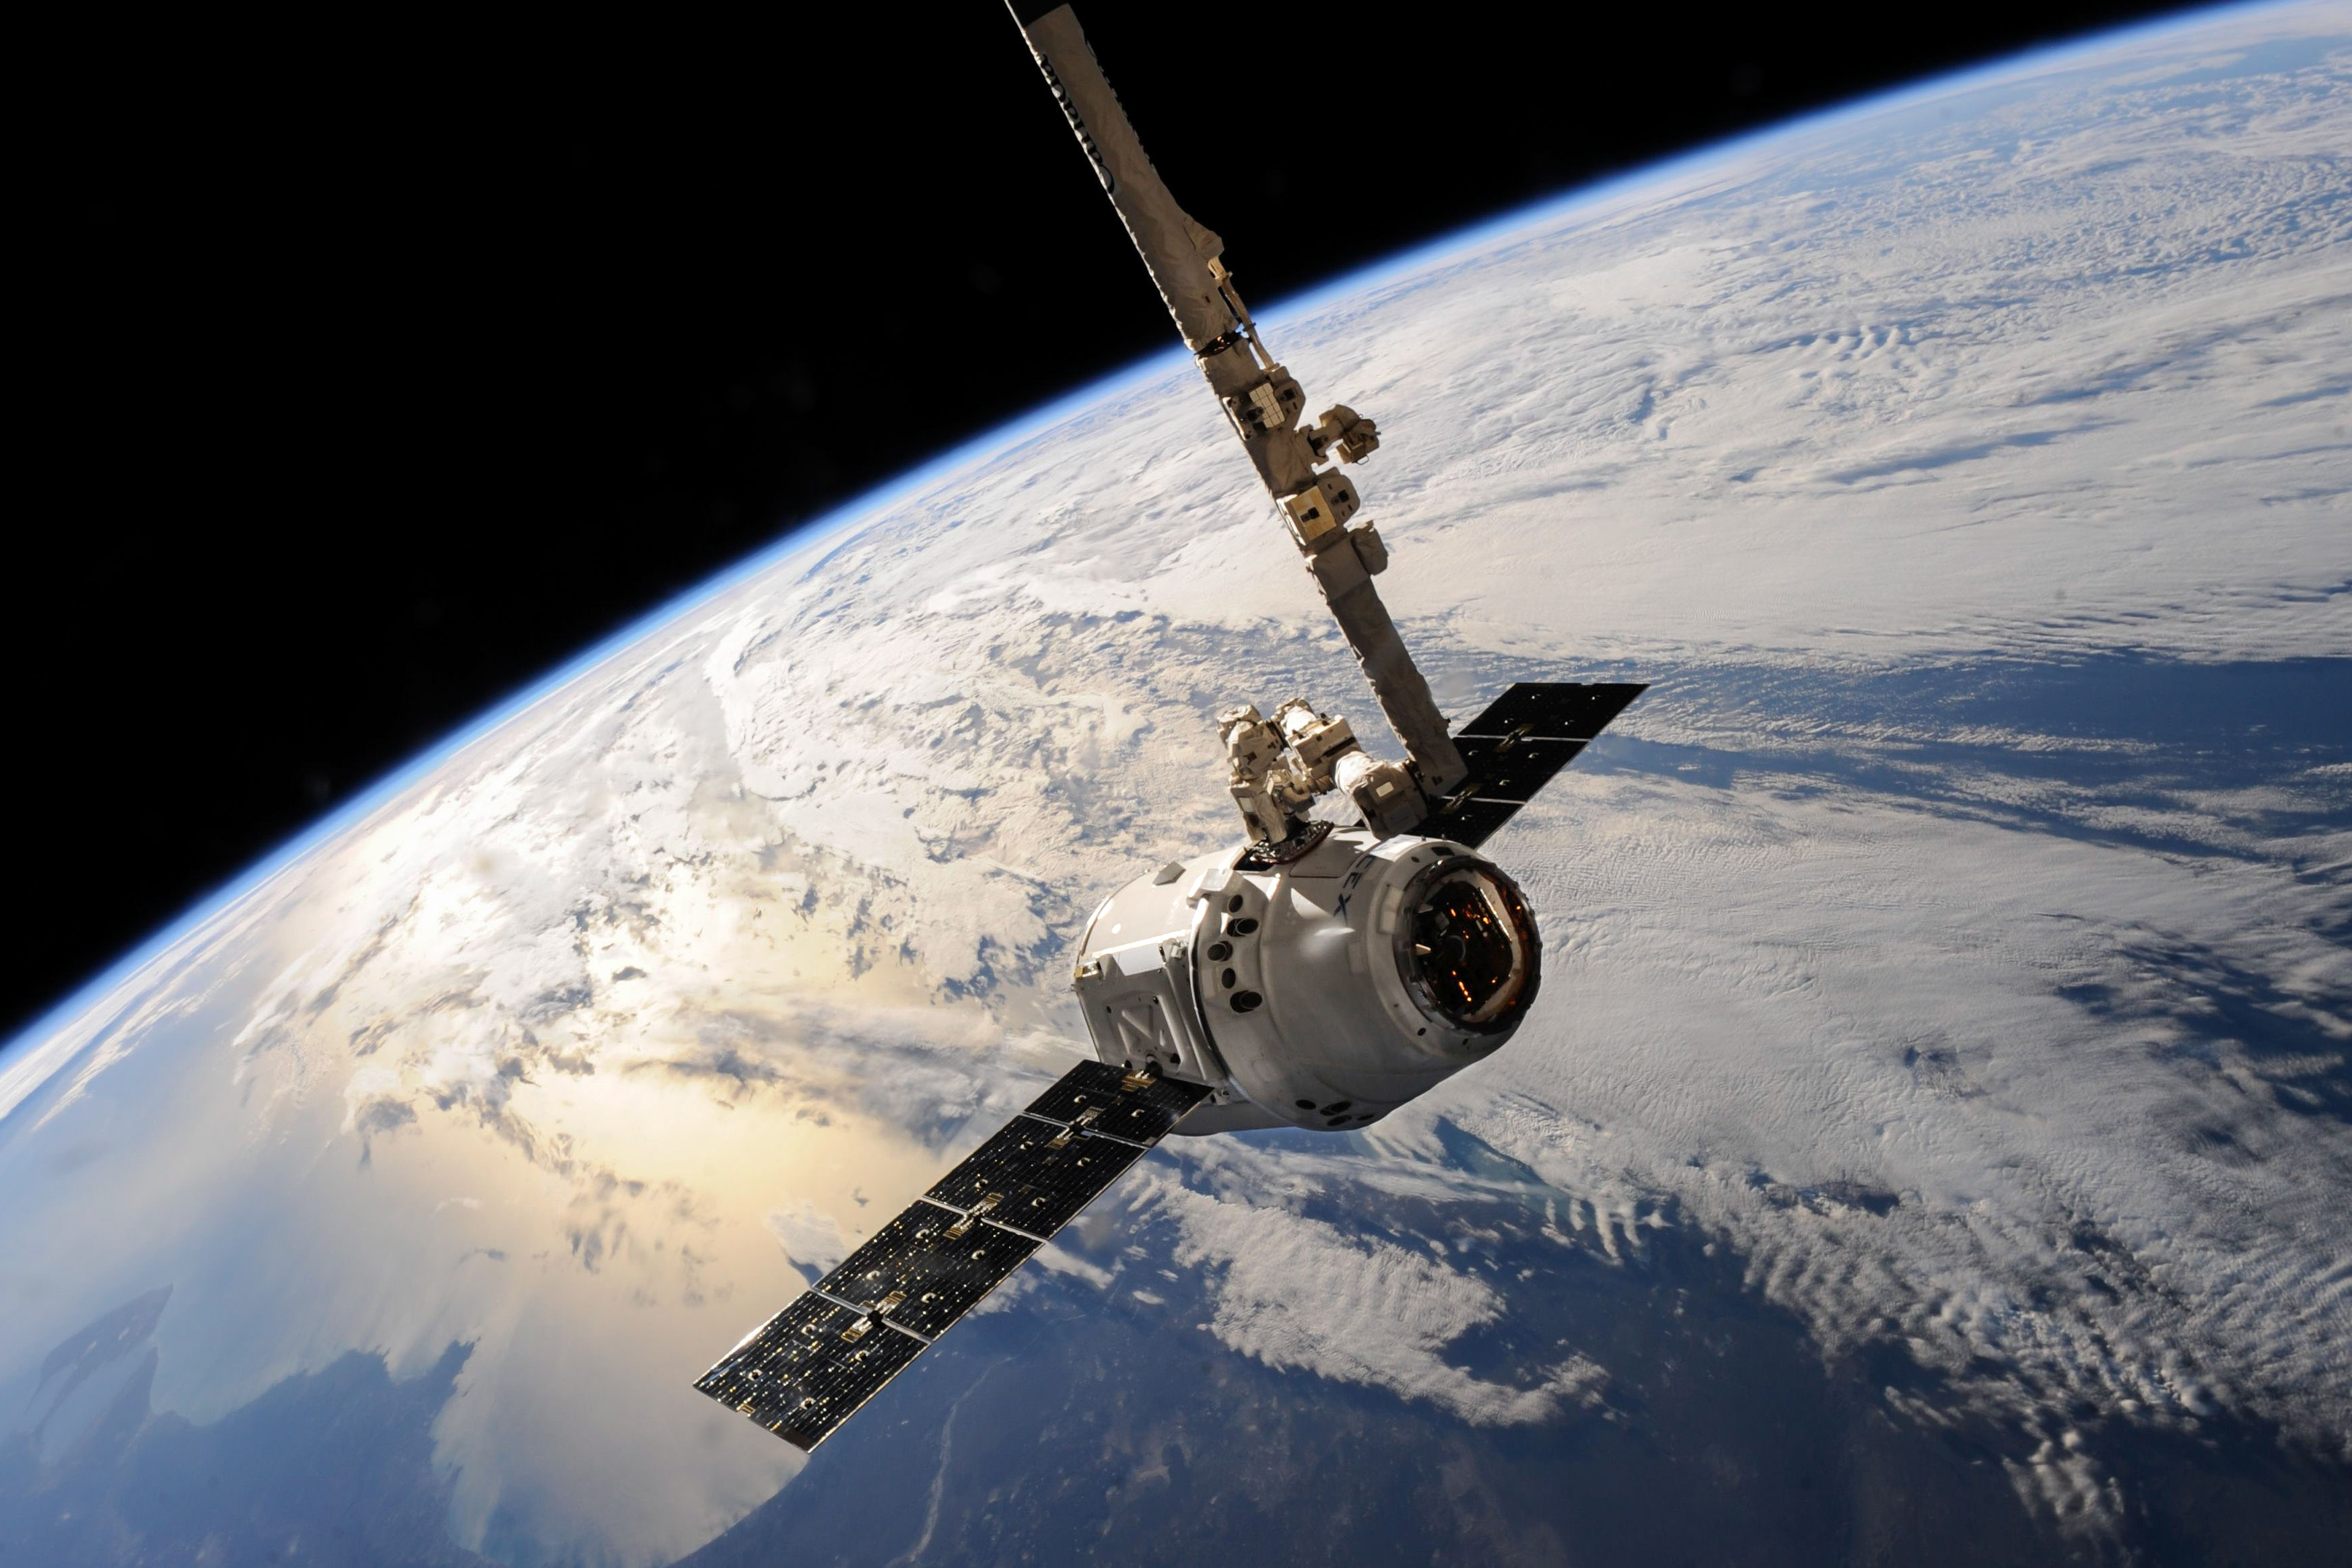 White Outer Space Satellite, Astronomy, Atmosphere, Aviation, Exploration, HQ Photo